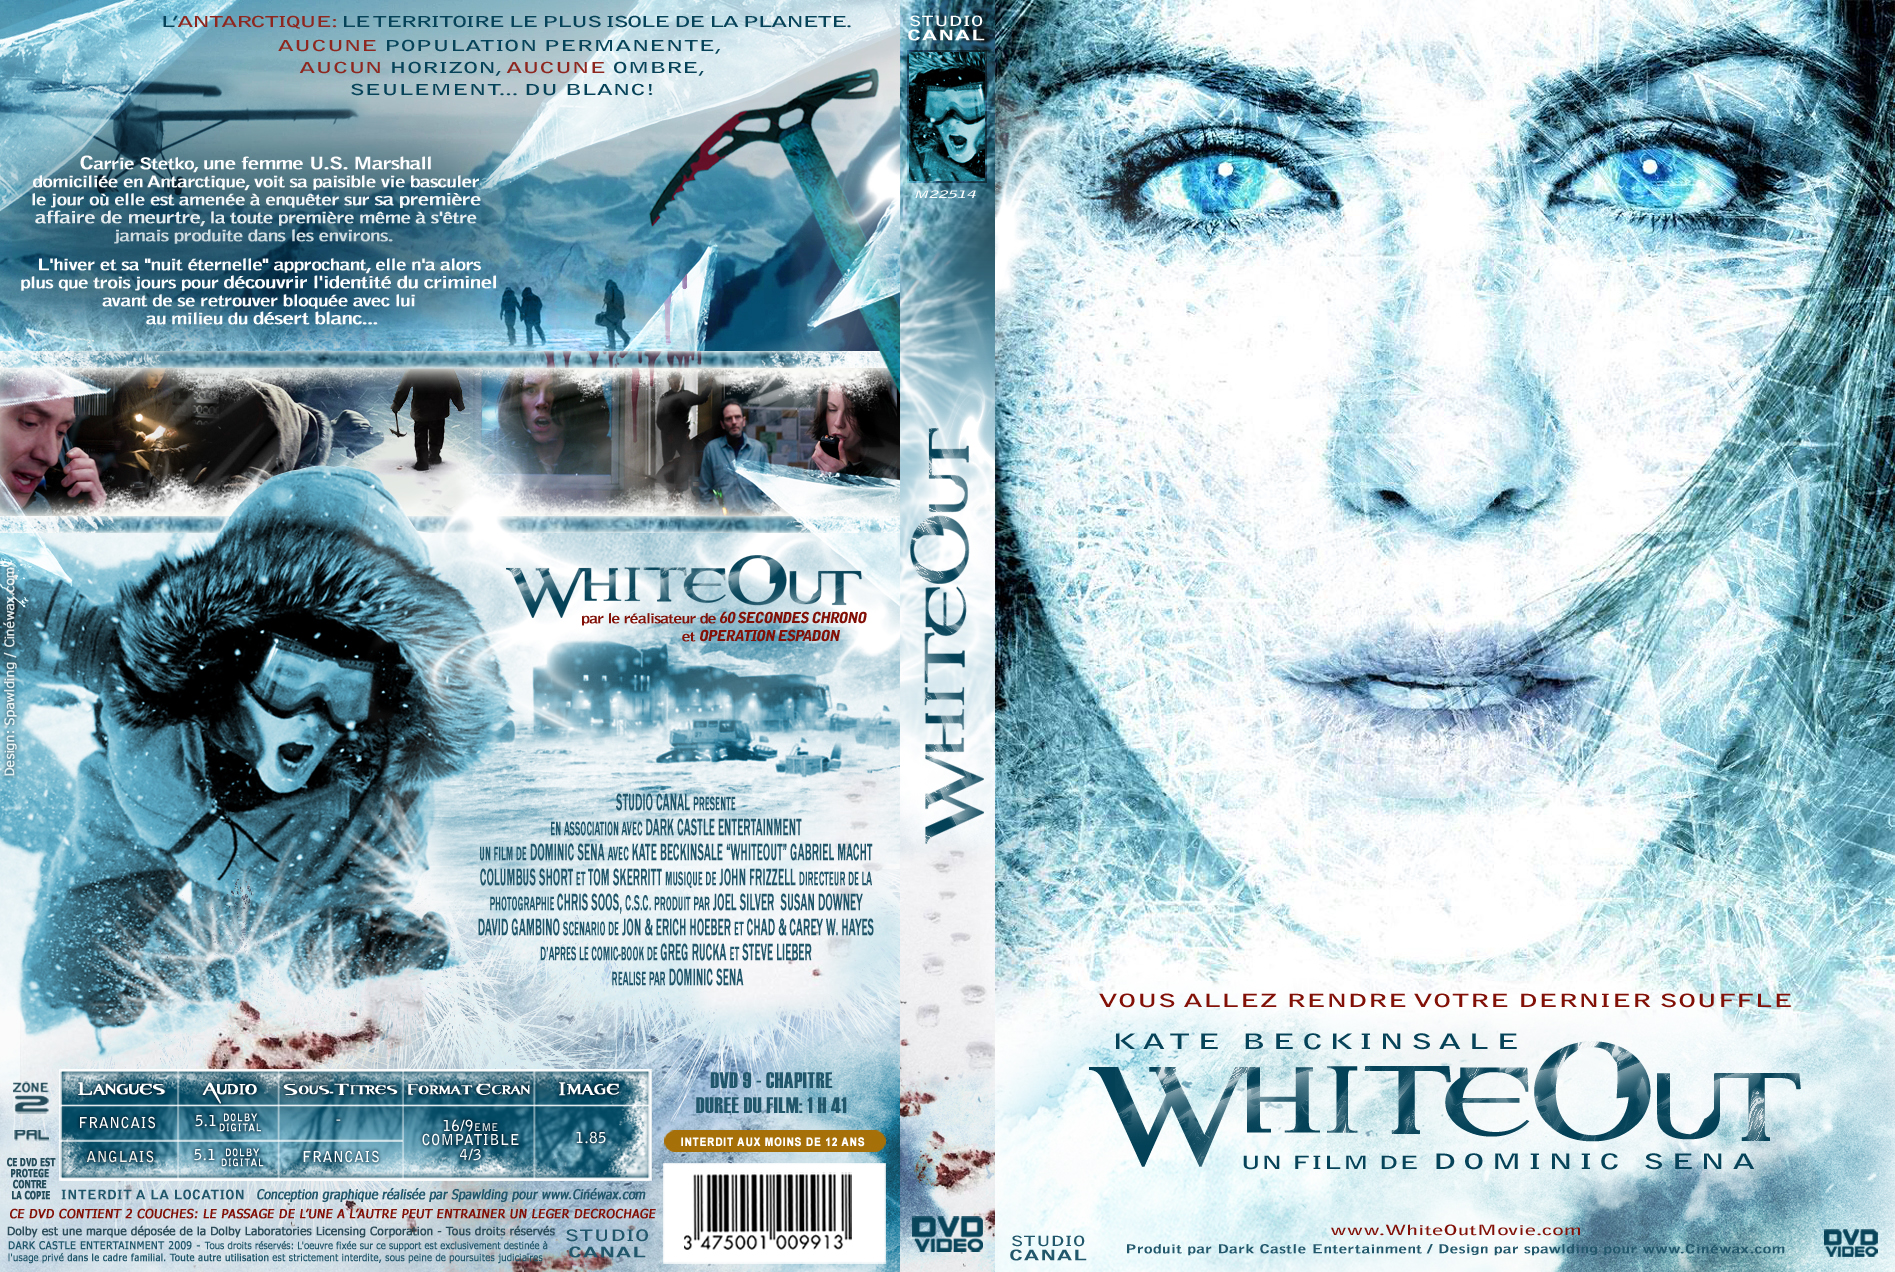 whiteout movie 2009 stream deutsch